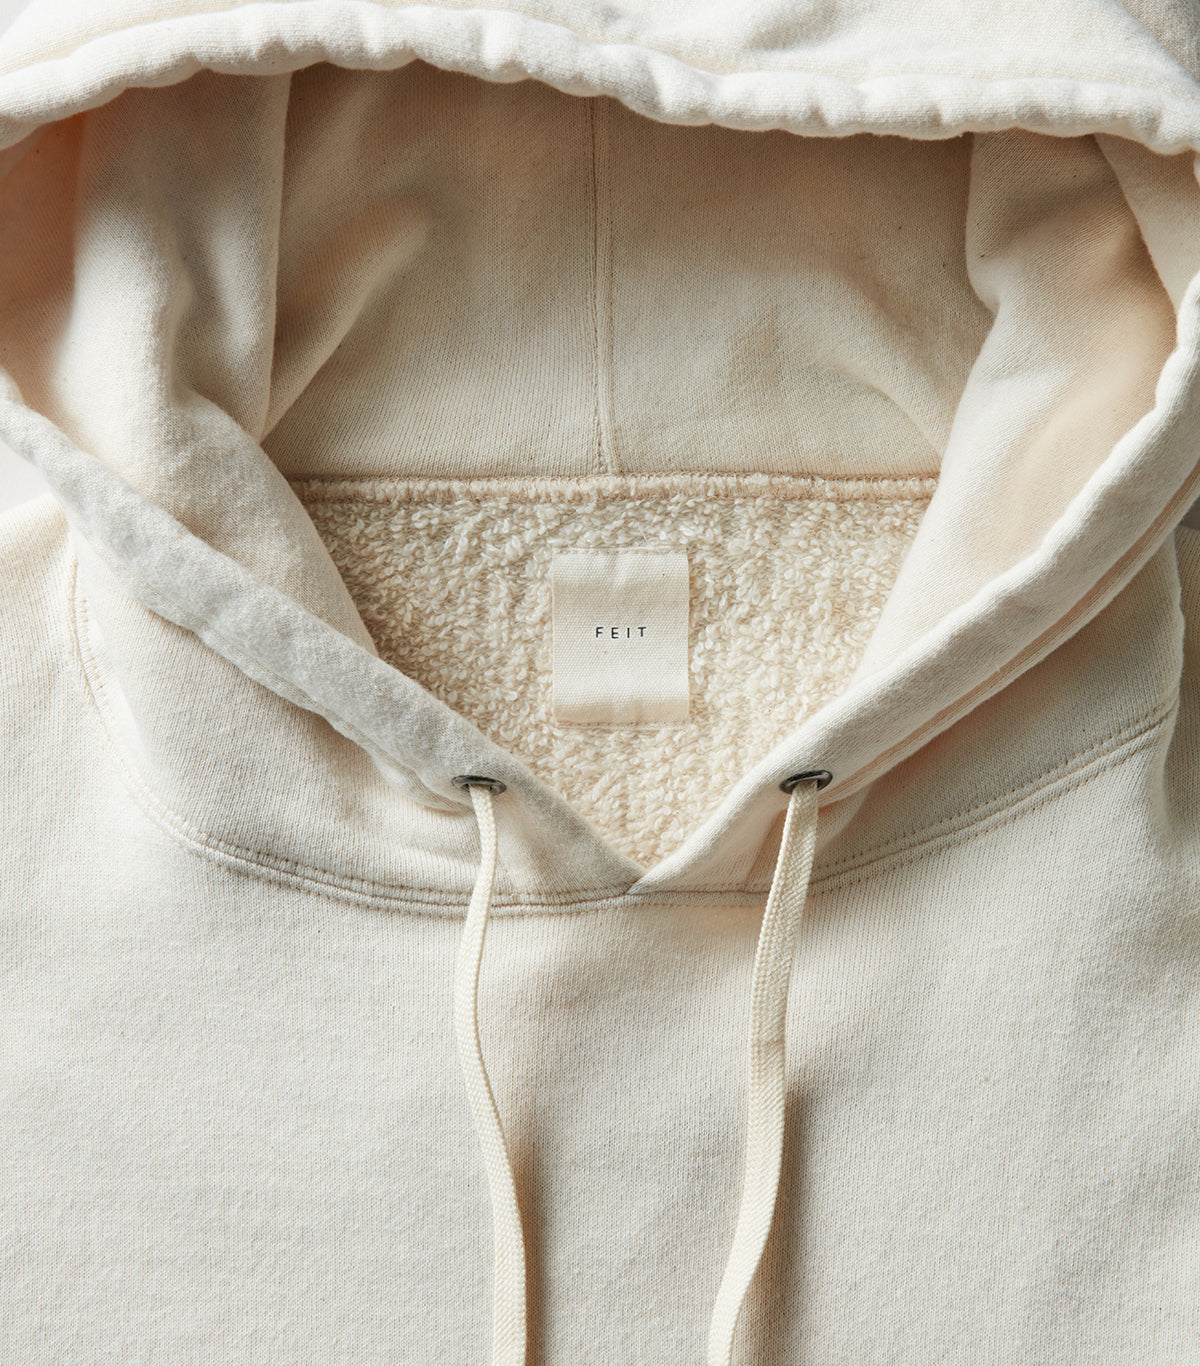 FEIT Hooded Sweatshirt